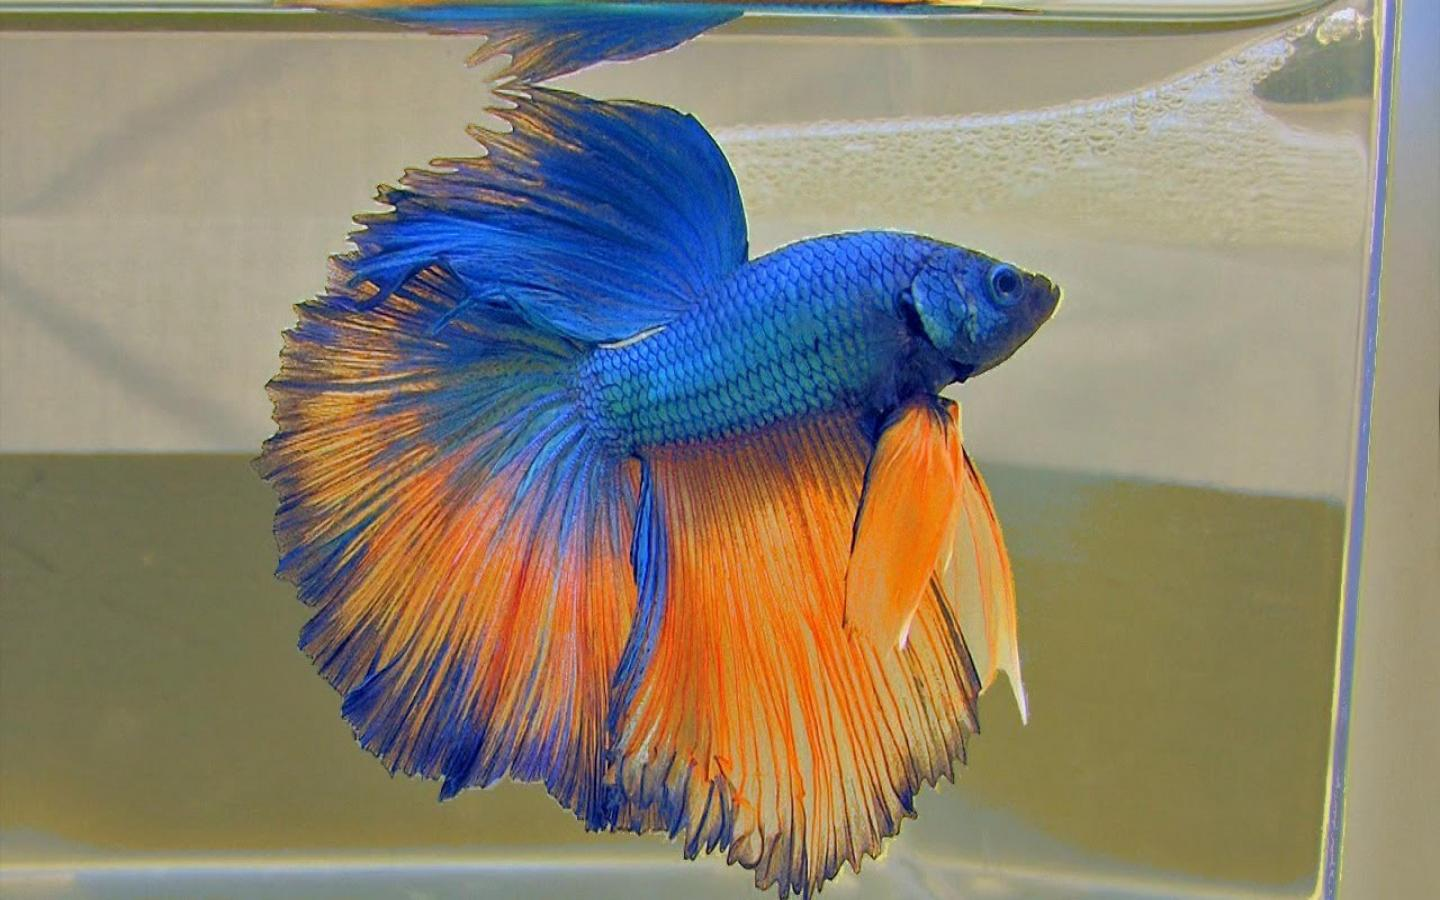 Iphone 5 Fish Wallpaper Blue And Orange Halfmoon Betta Fish Picture For Wallpaper